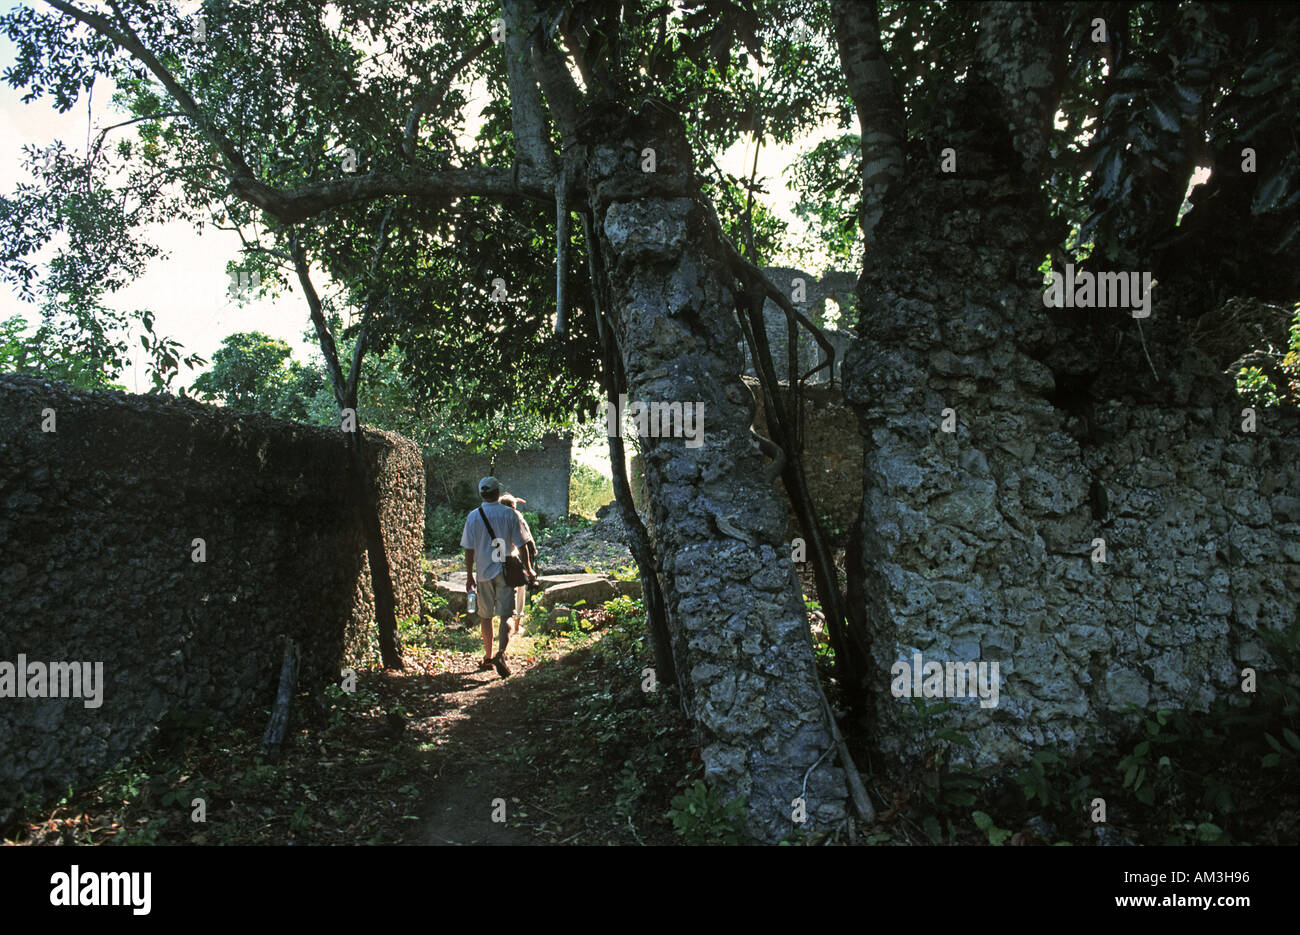 Abandoned overgrown and derelict buildings form part of the ruins of Kua on Joani island Walking in the ruins Mafia Tanzania - Stock Image